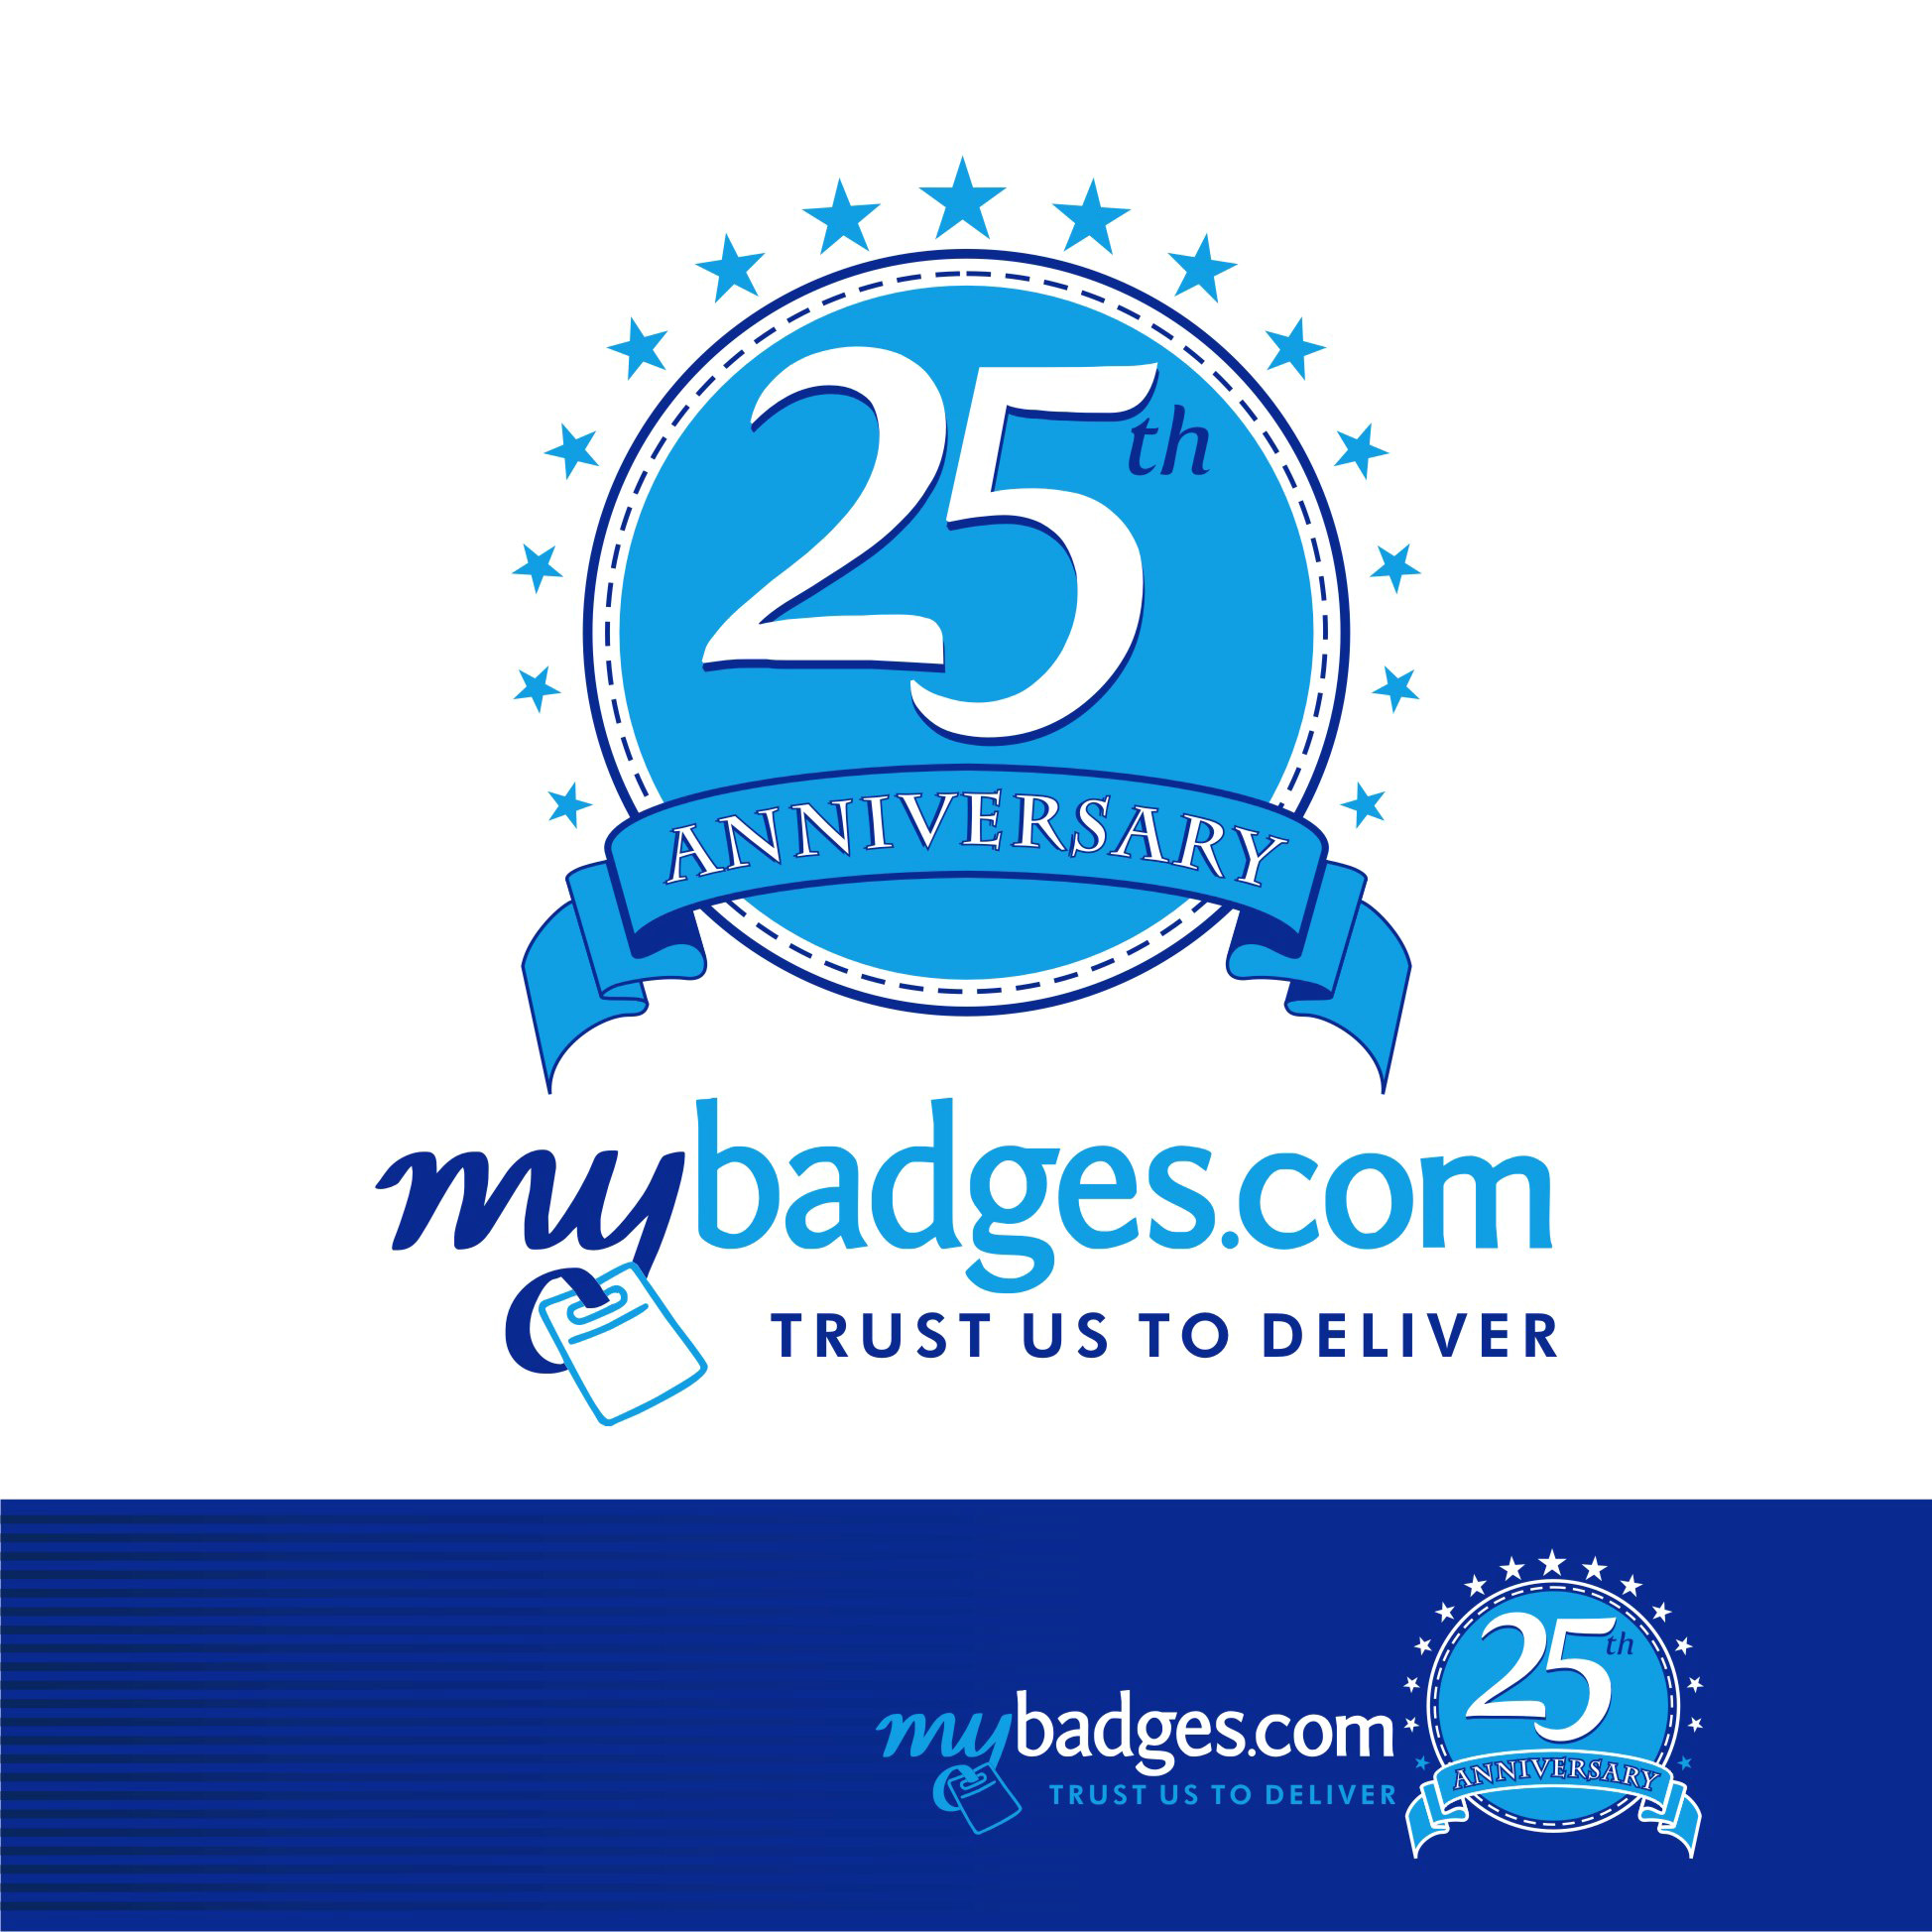 Logo Design by Private User - Entry No. 14 in the Logo Design Contest 25th Anniversary Logo Design Wanted for MyBadges.com.